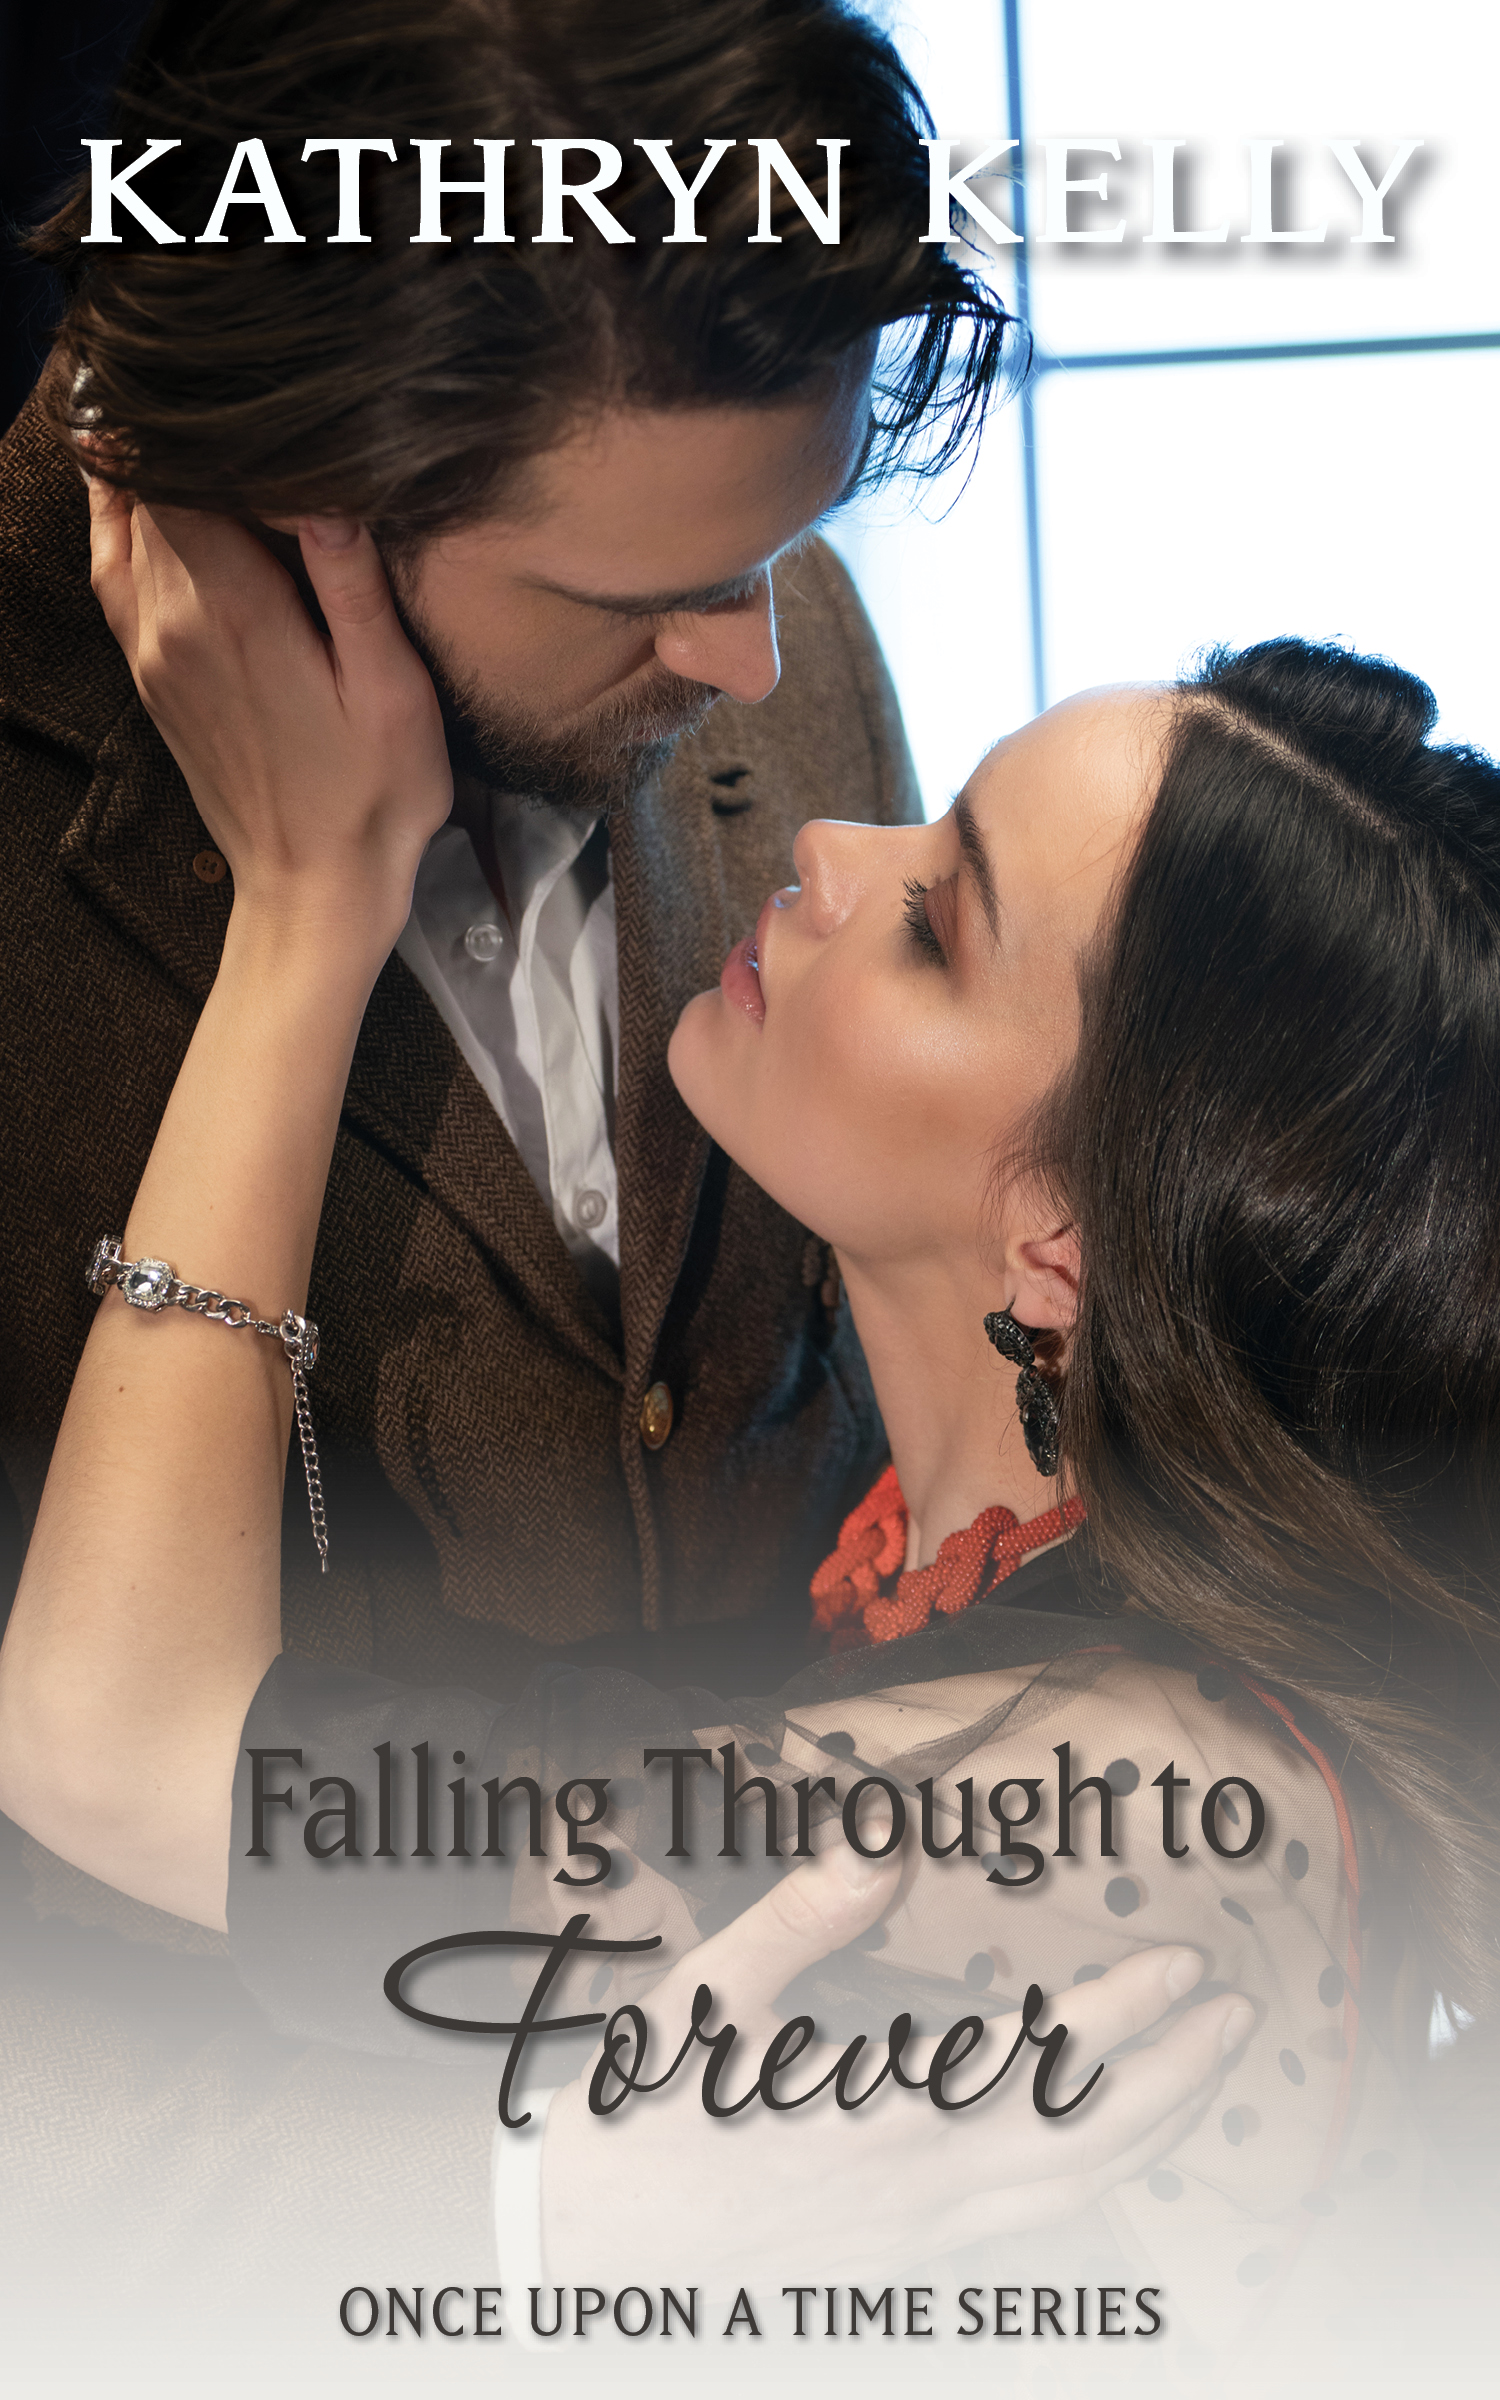 Falling Through to Forever - While a hurricane churns in the waters of Charleston Harbor, Gabriella Cooper perches on the slippery stone rubble of Fort Sumter.Her wedding dress catching in the buckles of her strappy heels cannot possibly be a good omen.When something unexpected happens during the storm, Gabriella questions life as she knows it.A standalone novel that introduces new characters into best-selling author Kathryn Kelly's Once Upon a Time world of time travel romance.